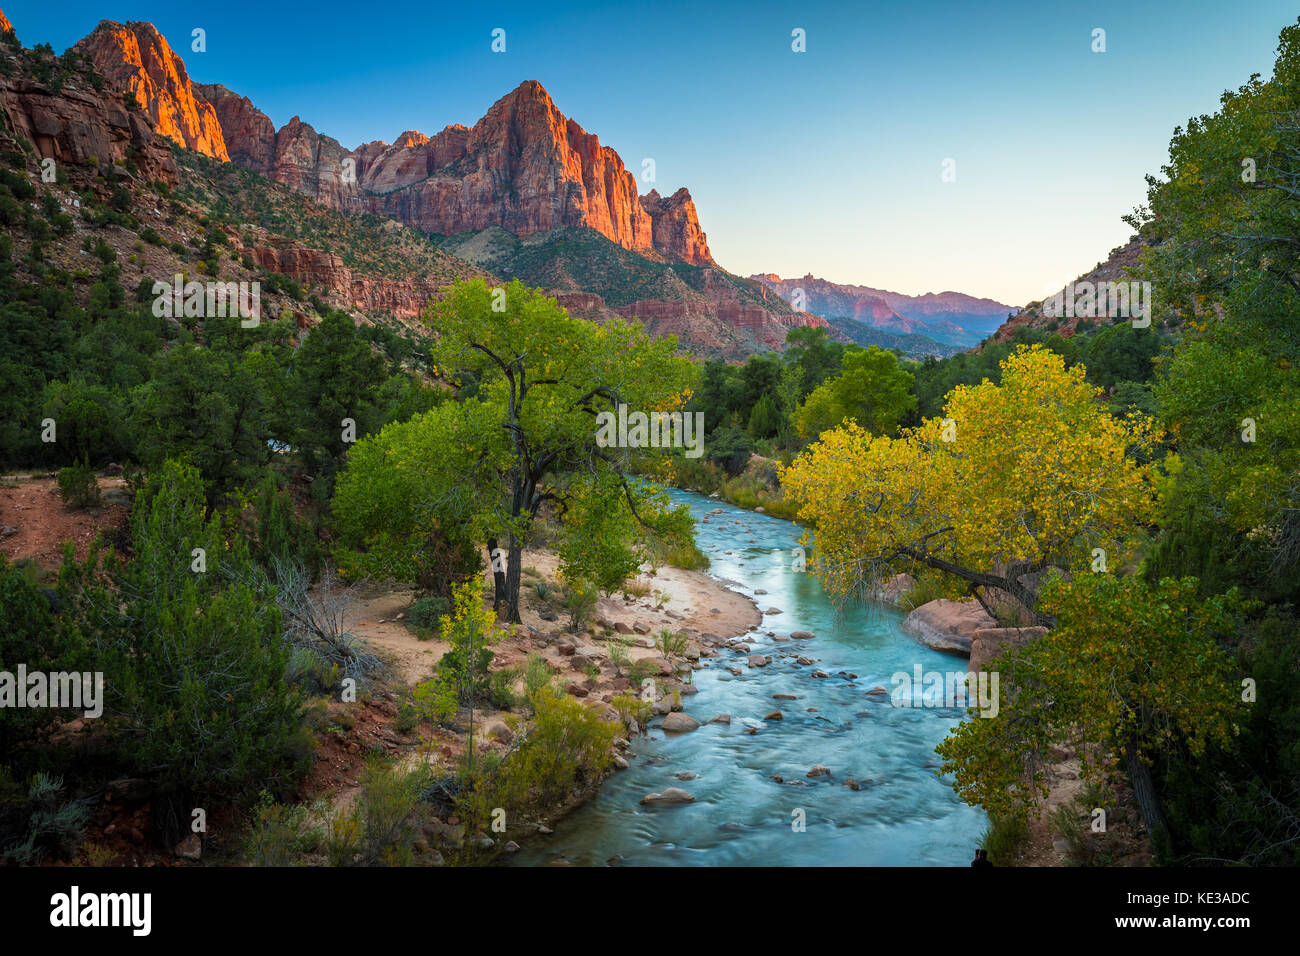 The Watchman peak in Zion National Park in southwestern Utah. - Stock Image